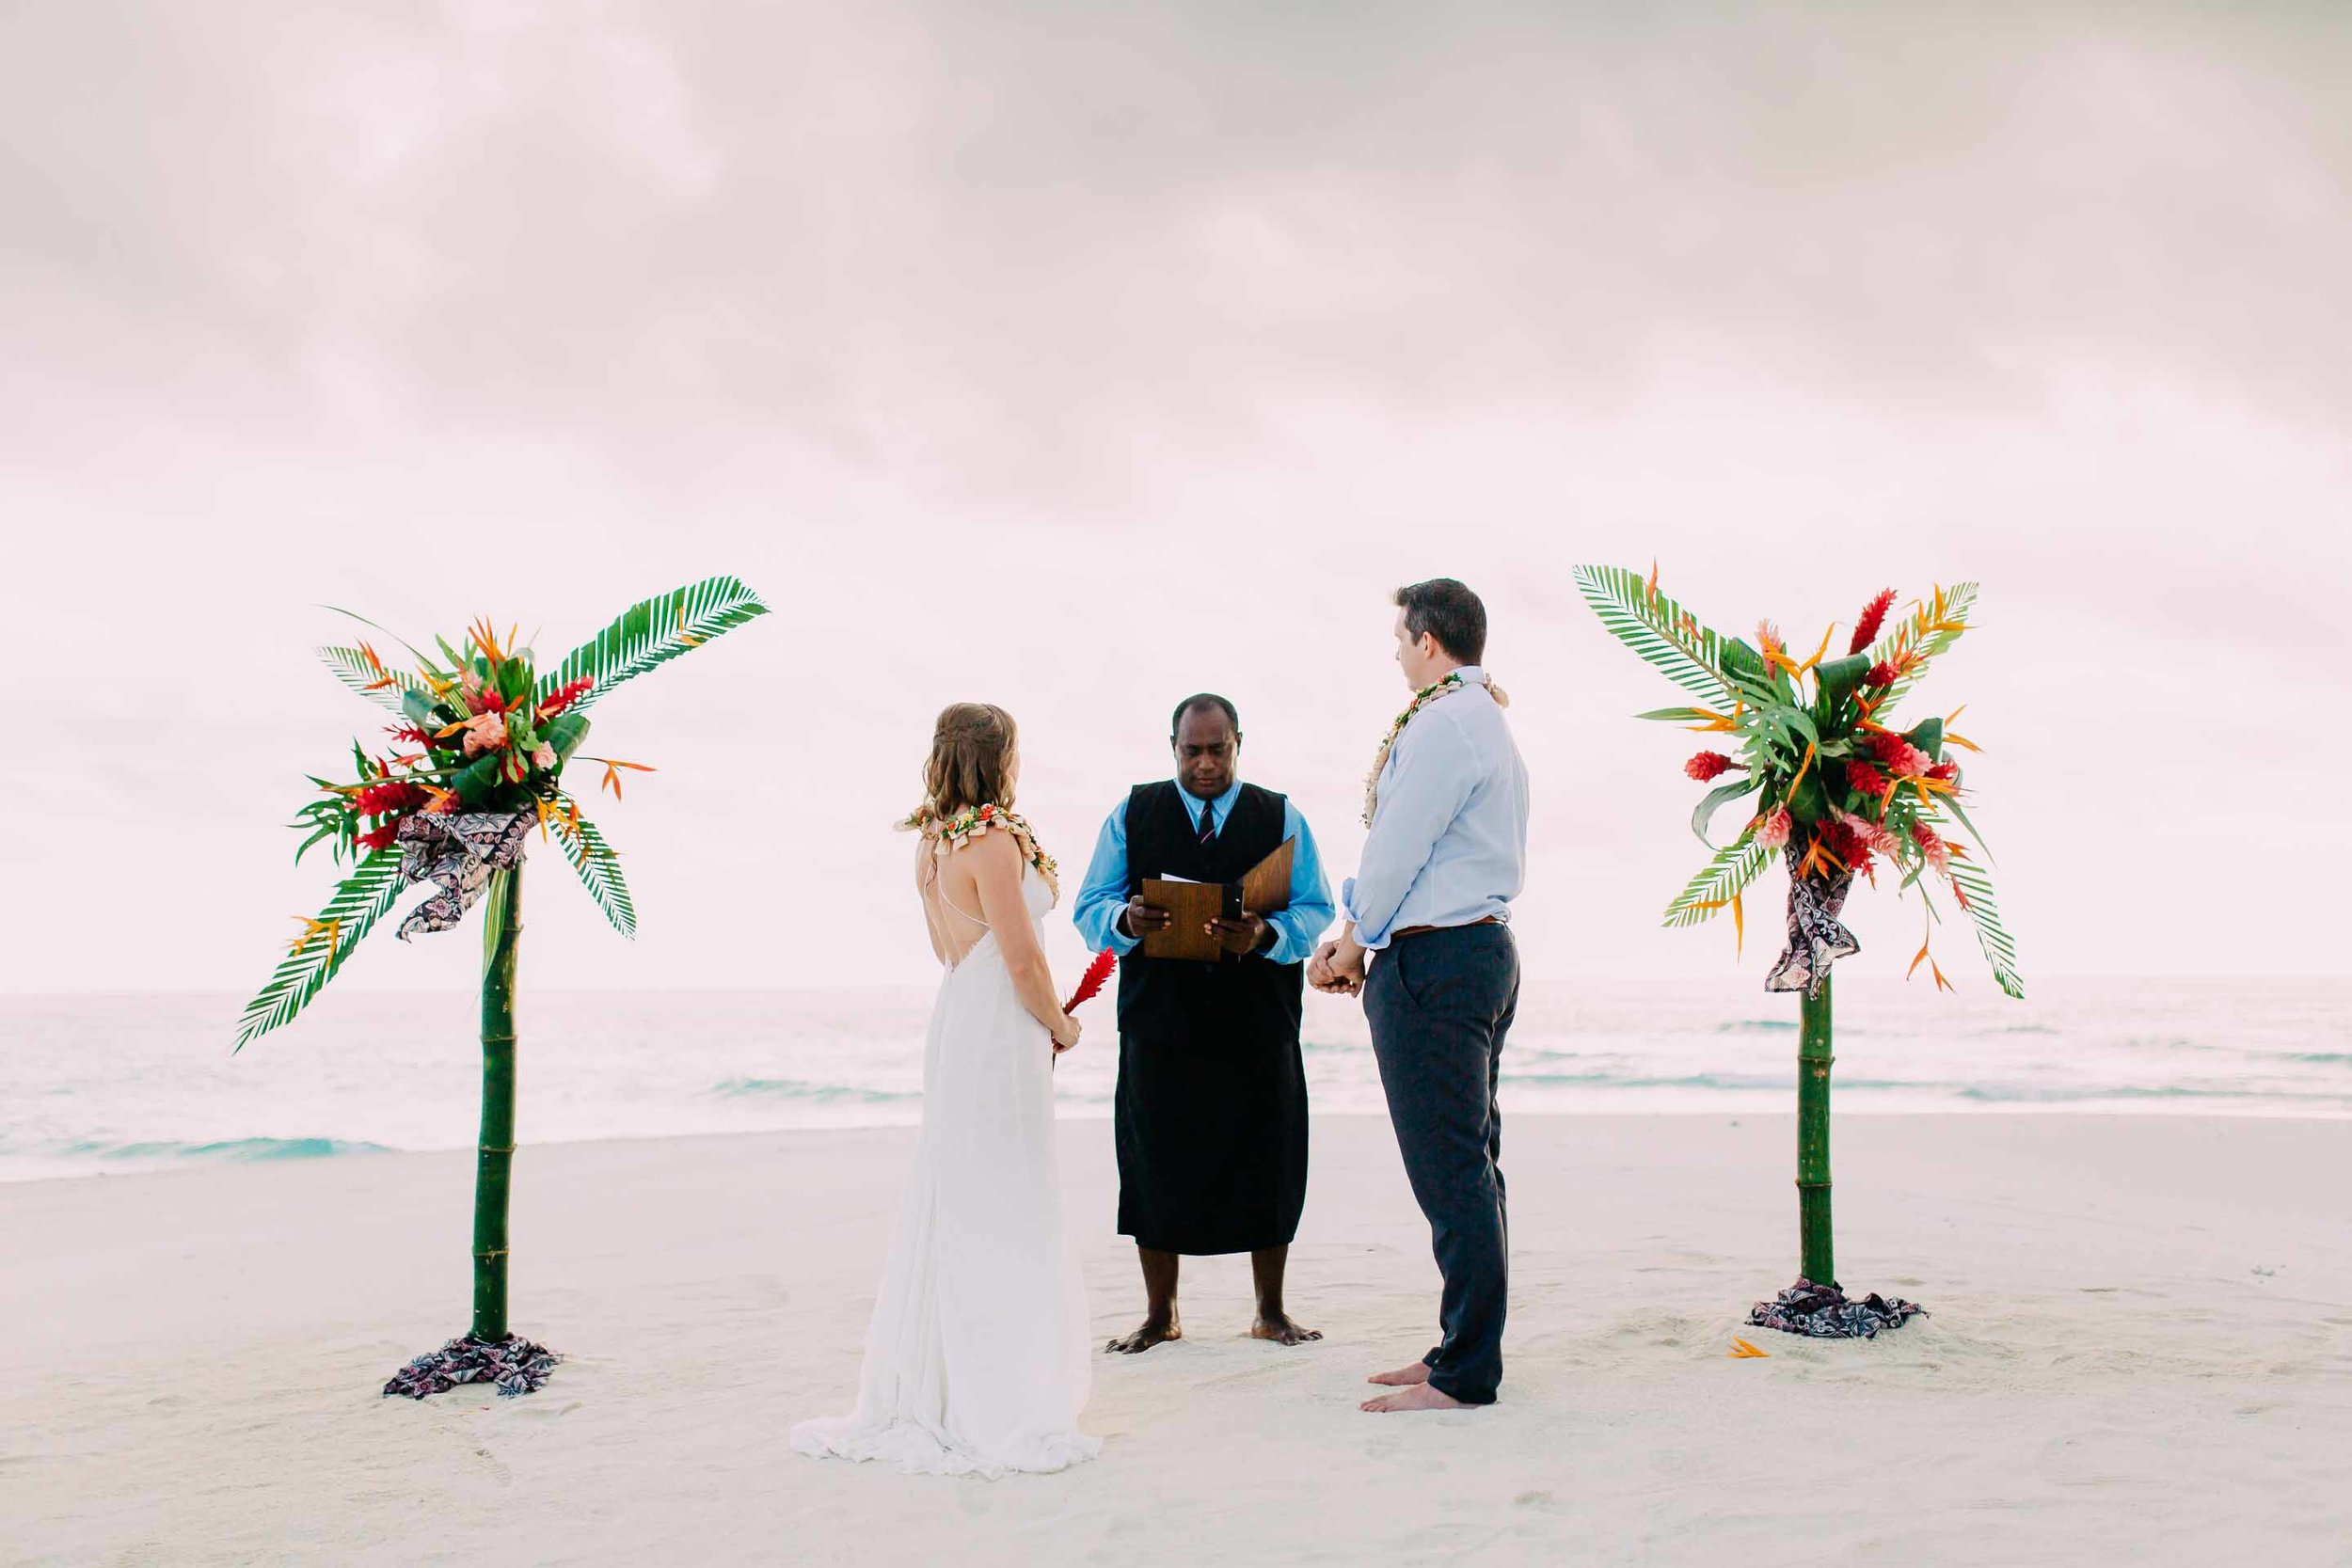 Celebrant performs the ceremony for the excited couple